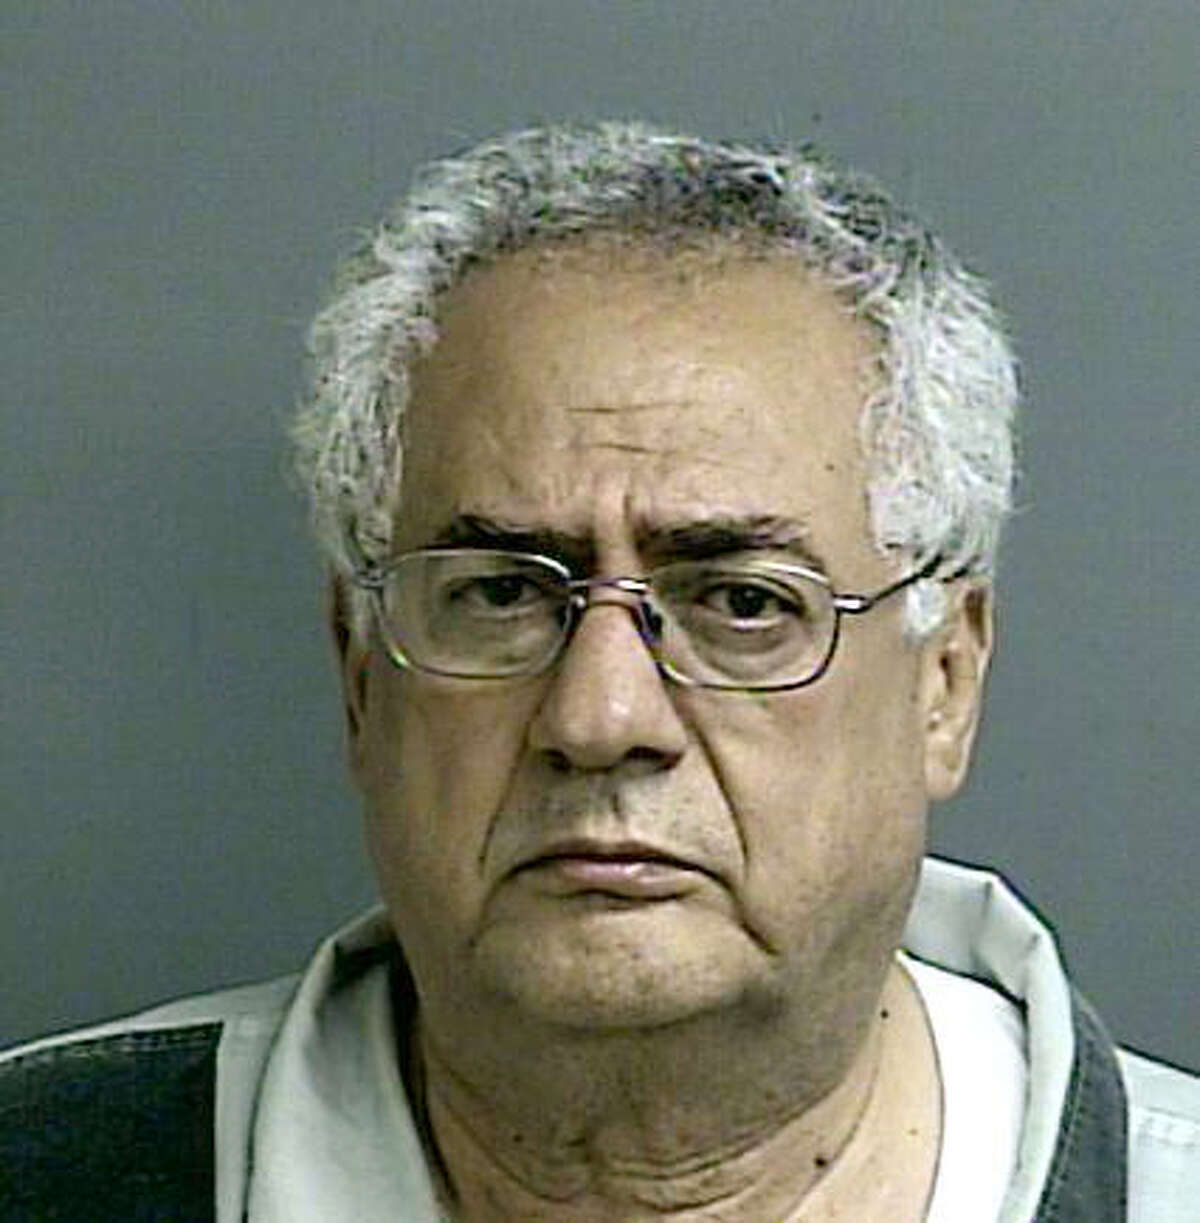 """Dr. Rezik A. Saqer was arrested and accused of operating what investigators called """"pill mills"""" that had supplied addictive drugs to a retiree charged in a fatal crash that killed a family of four."""